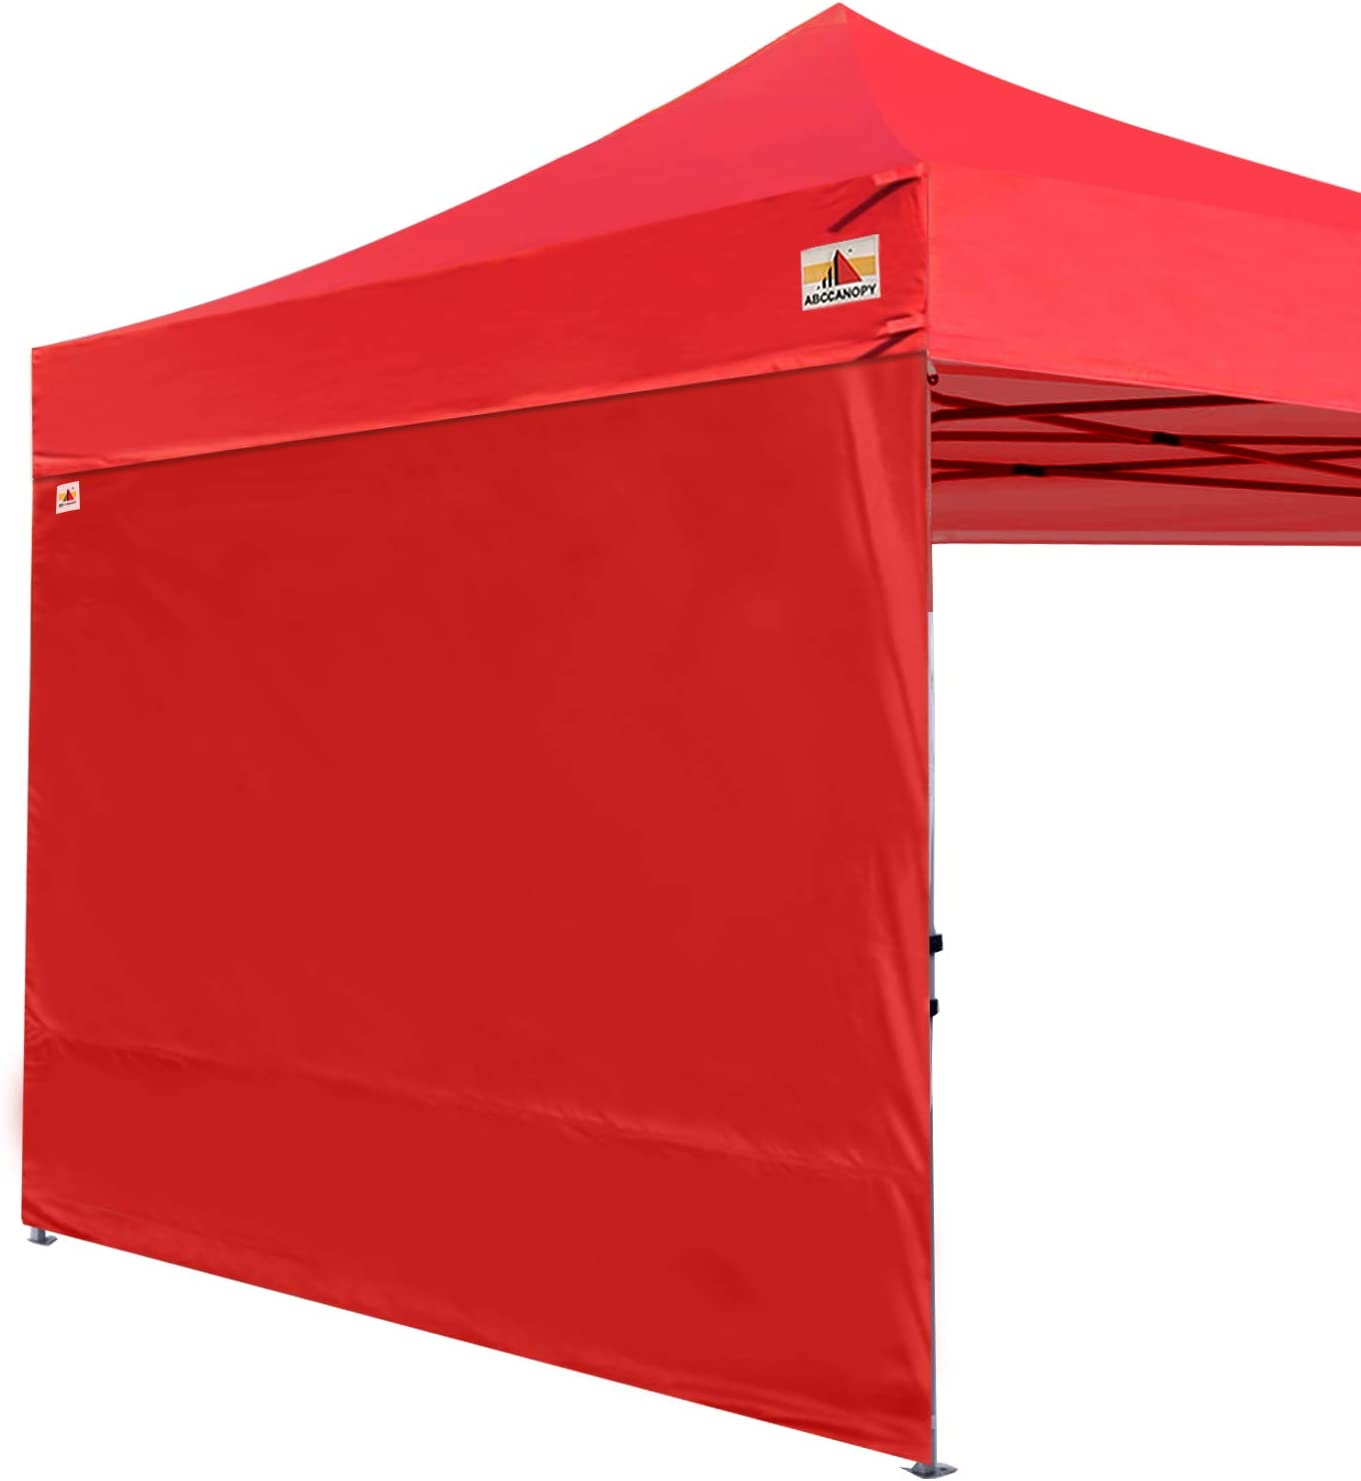 ABCCANOPY Instant Canopy SunWall (15+Colors) for 10x10 Feet, 10x20 Feet Straight Leg pop up Canopy, 1 Pack Sidewall Only, Red